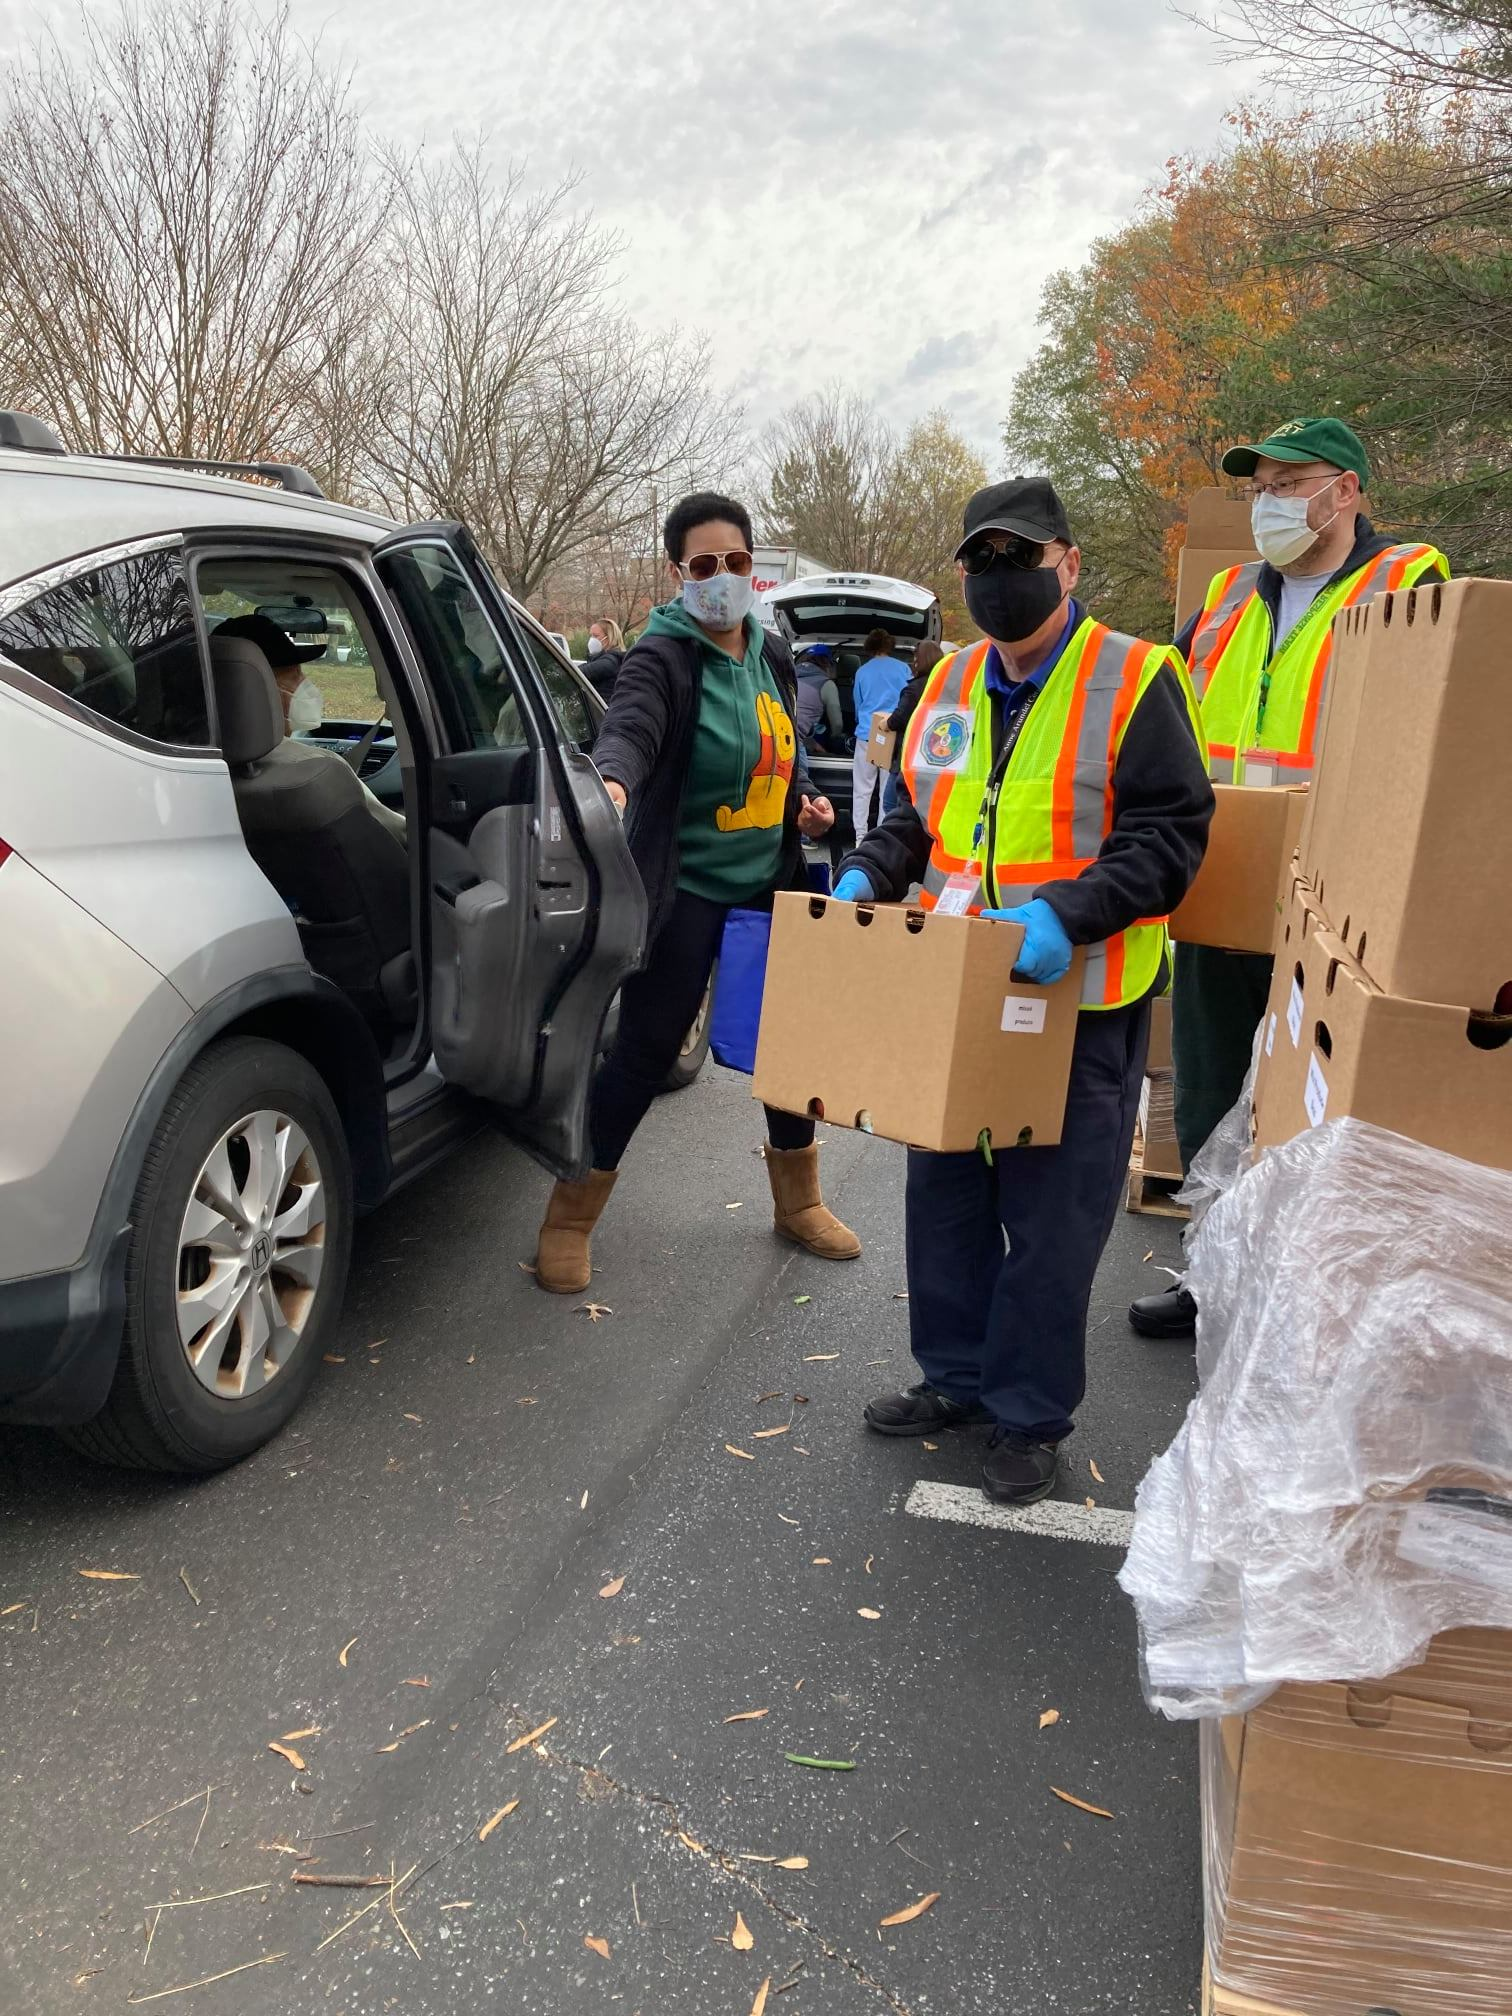 AAACERT members in safety vests hold boxes full of food; a car has pulled up and the door is open to receive food.